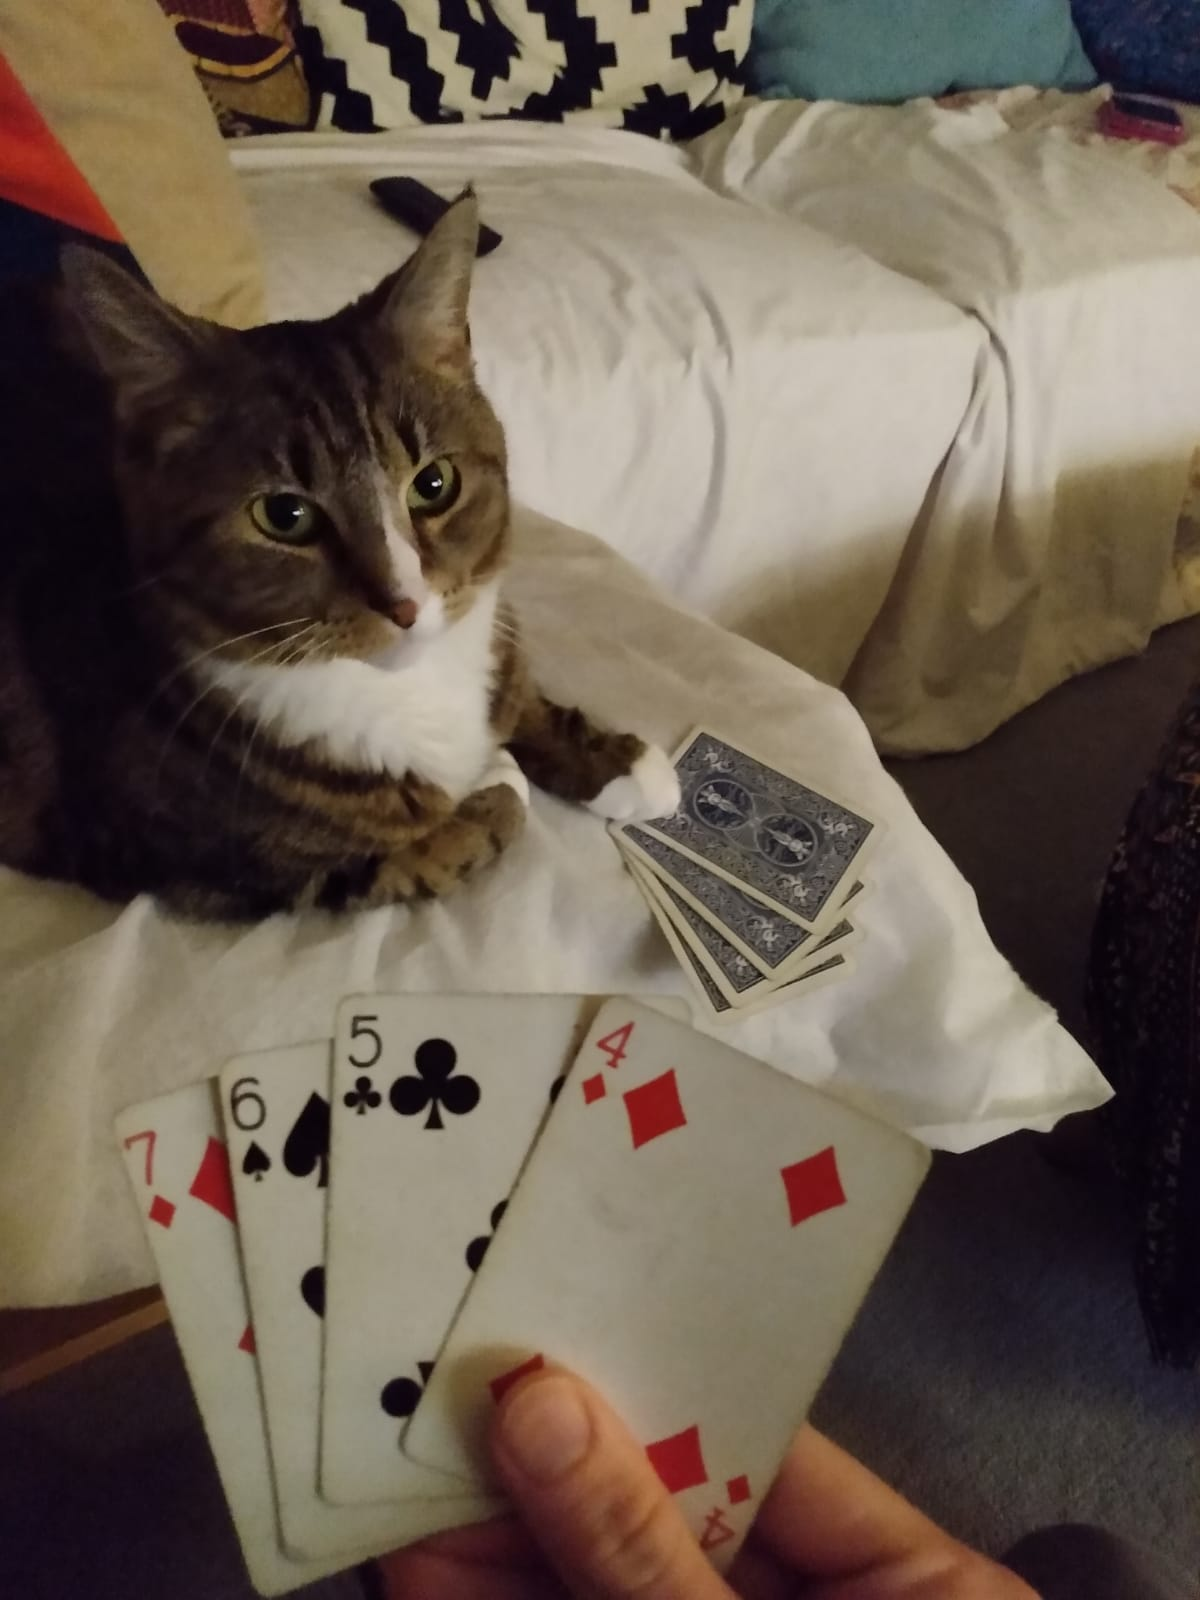 Prince with a card game